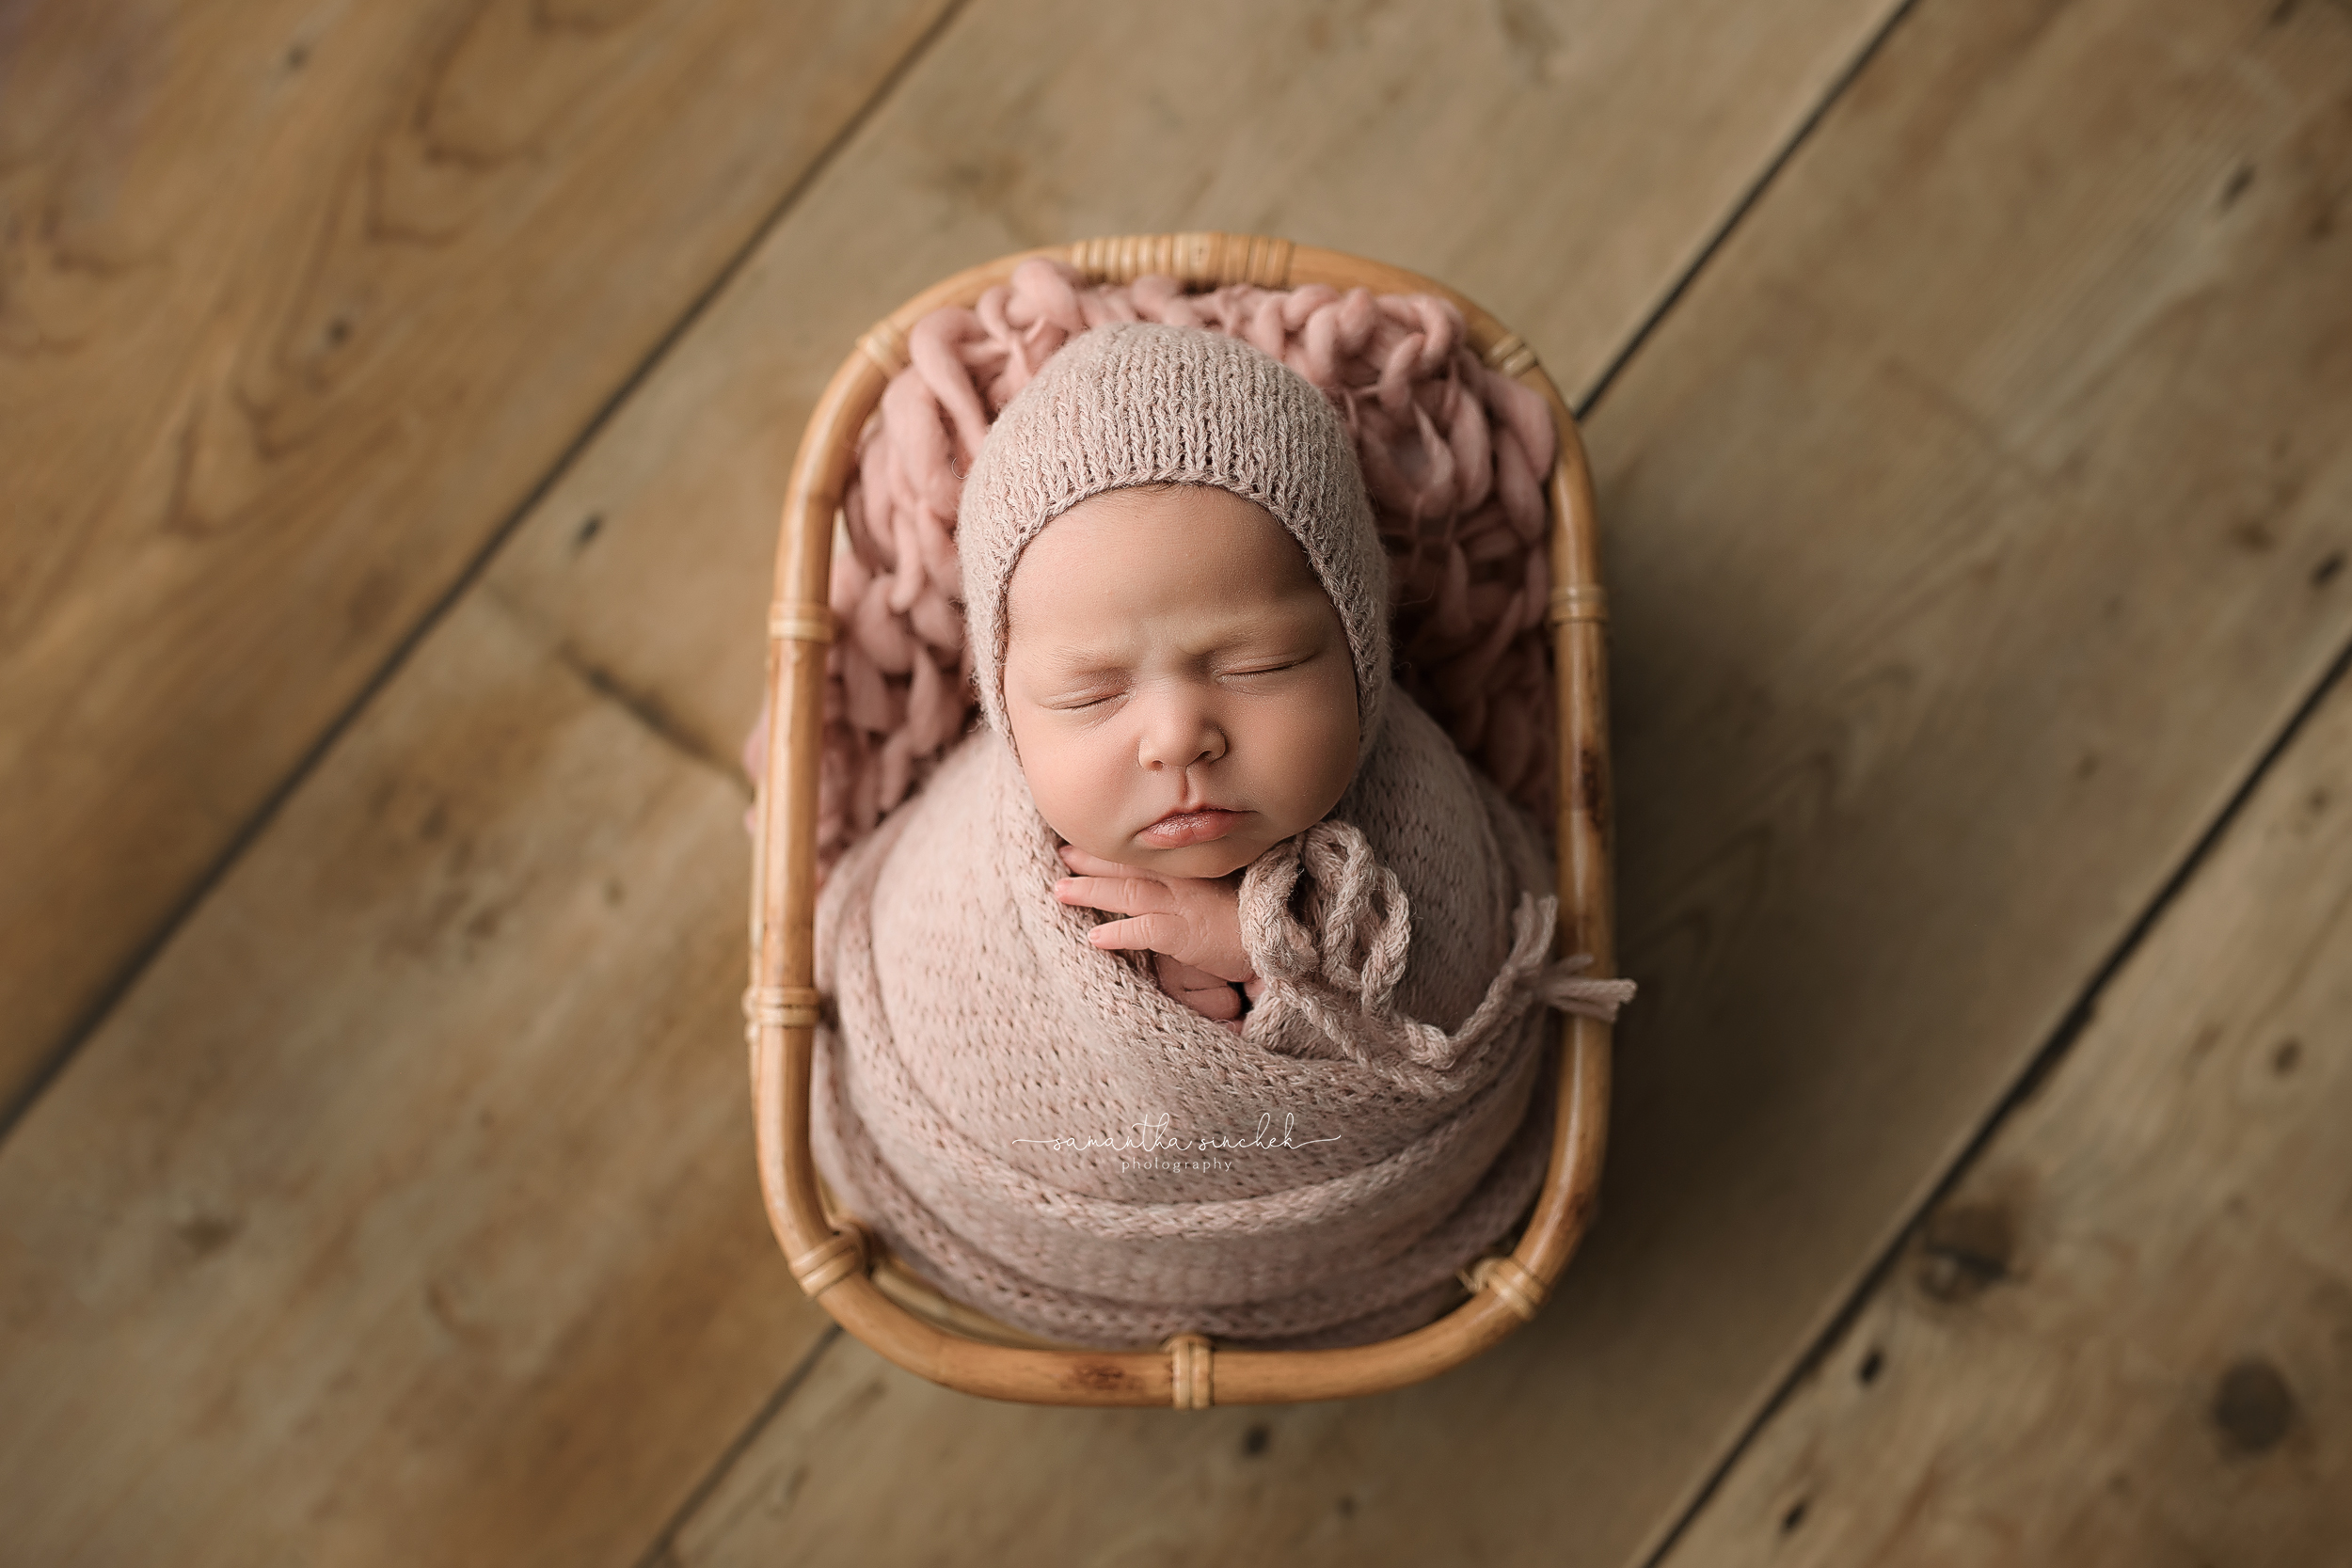 16 day old newborn baby asleep in basket at pictures with Samantha Sinchek Photography